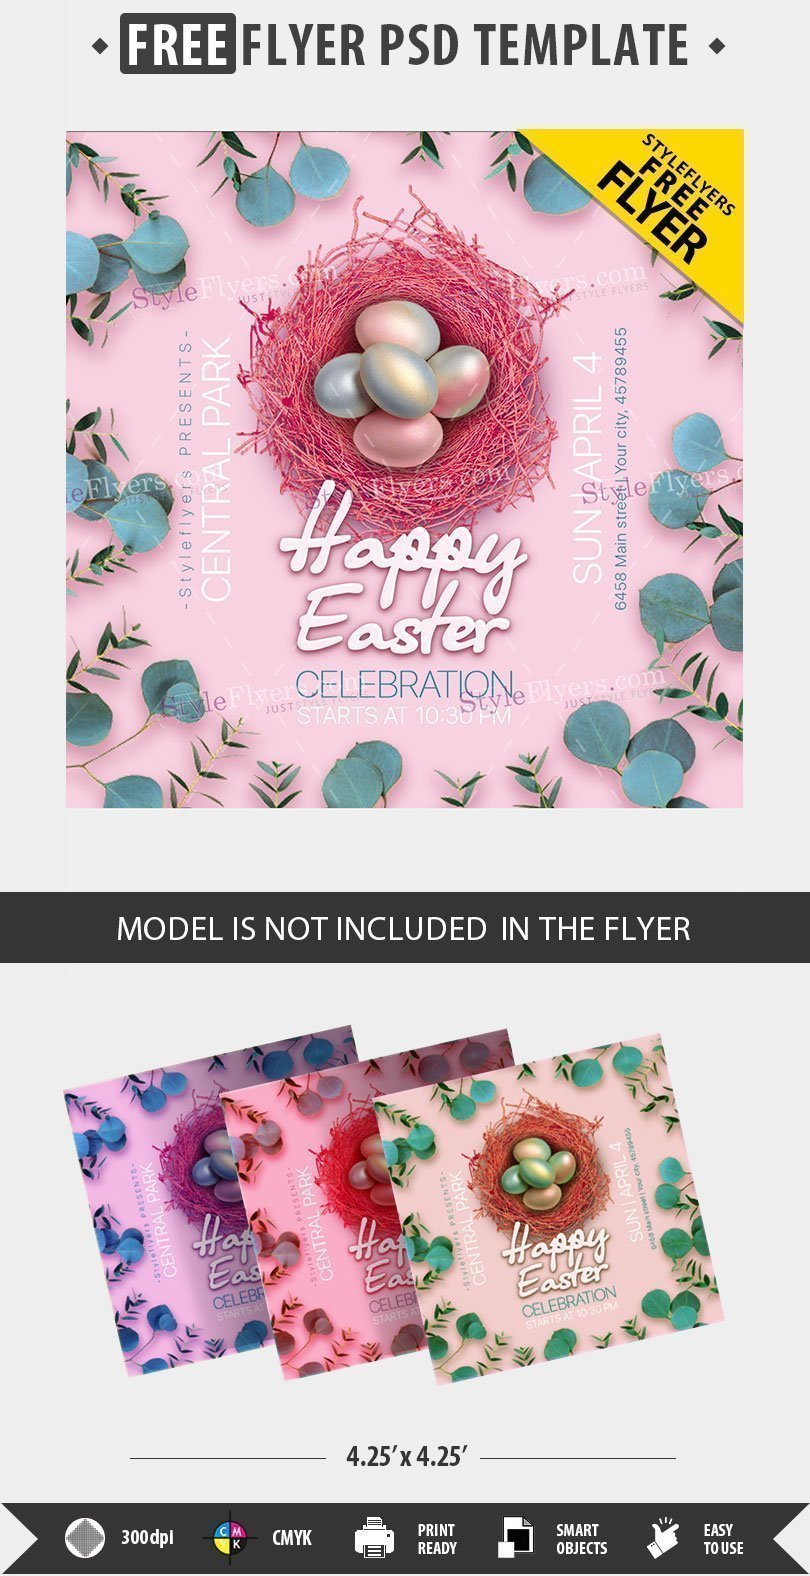 preview_FREE_FLYER_square_easter